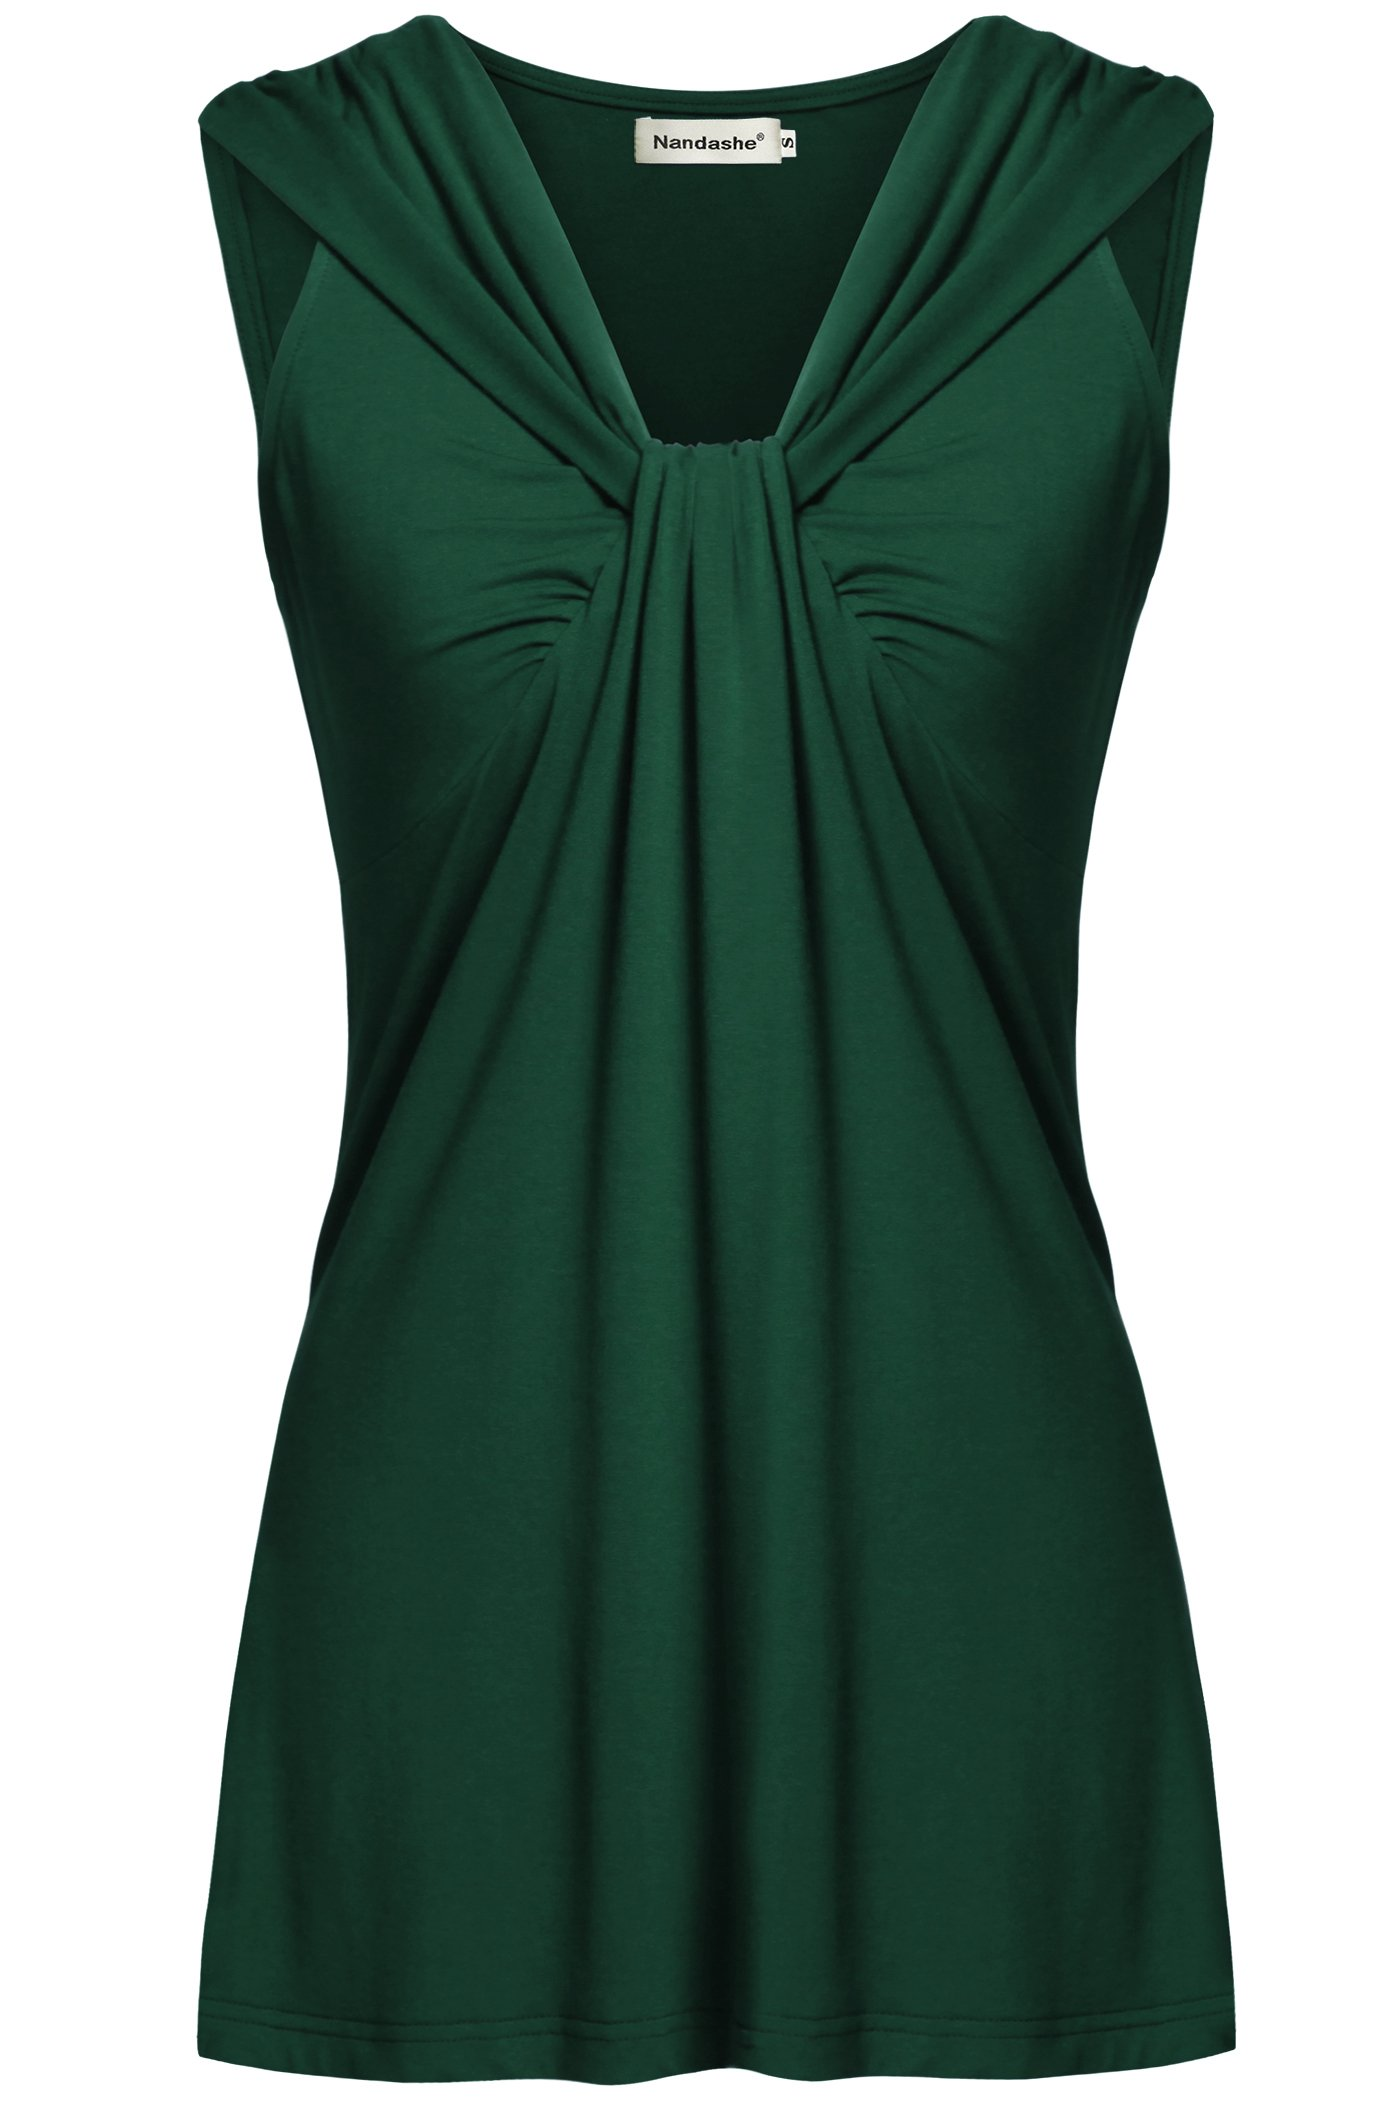 Nandashe Cami Tank Tops Women, Females Sexy Notch Neck Loose Cotton Camisoles Around The House Lightweight T Shirts Office Clothes Leggings Chic Formal Beach Stretch Tunic Cami XX-Large Green